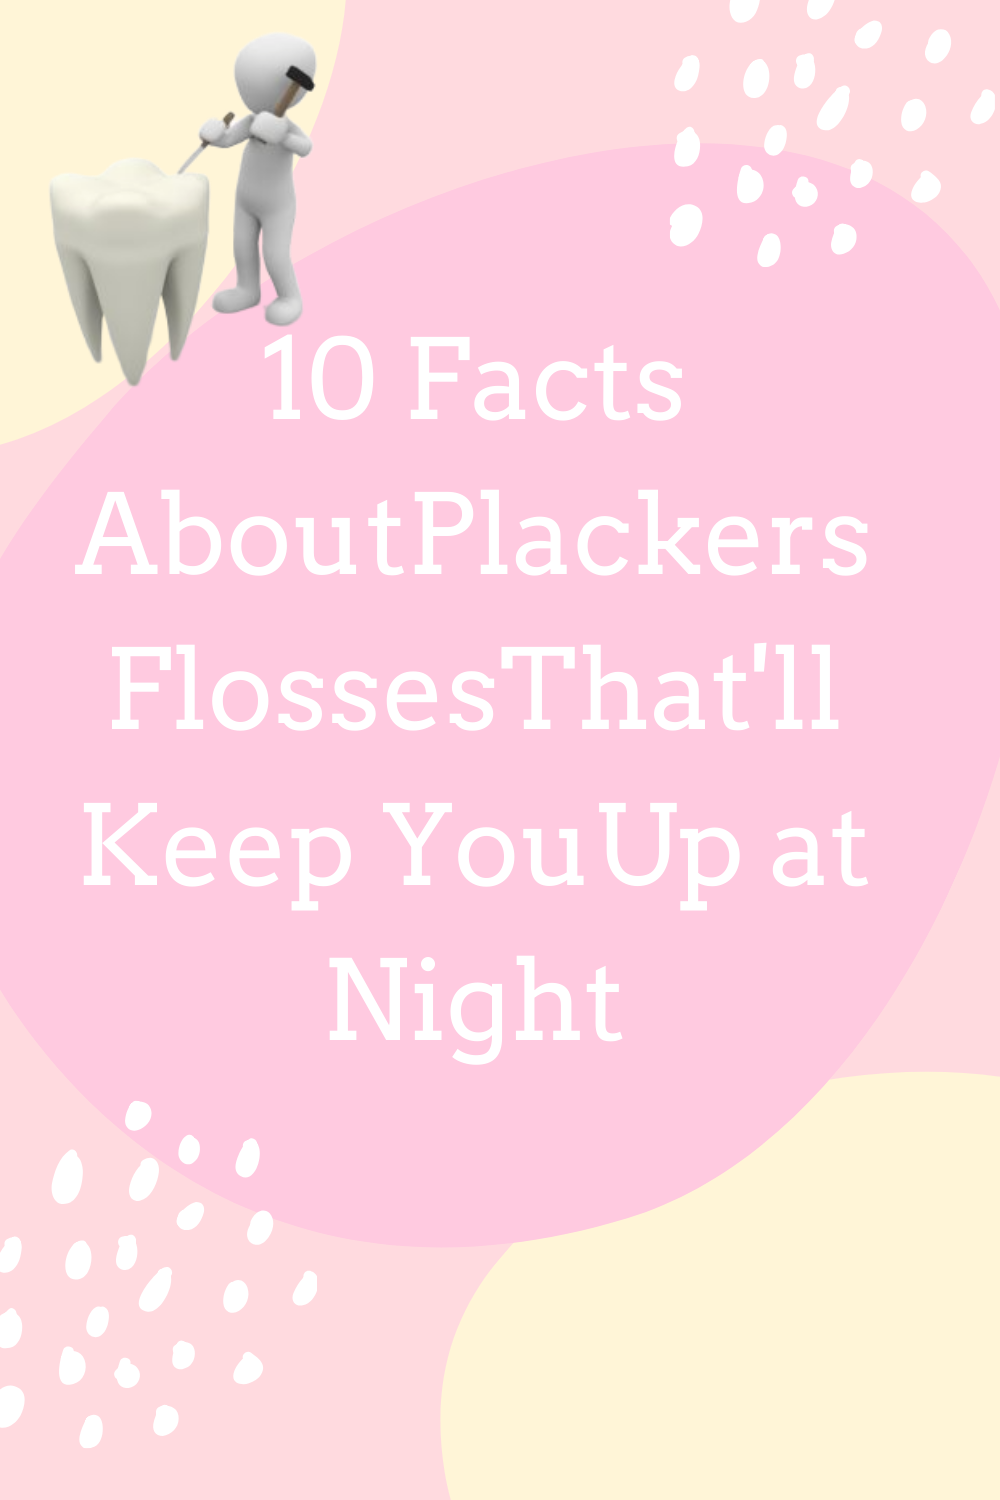 10 Facts About Plackers Floss That Will Keep You up at